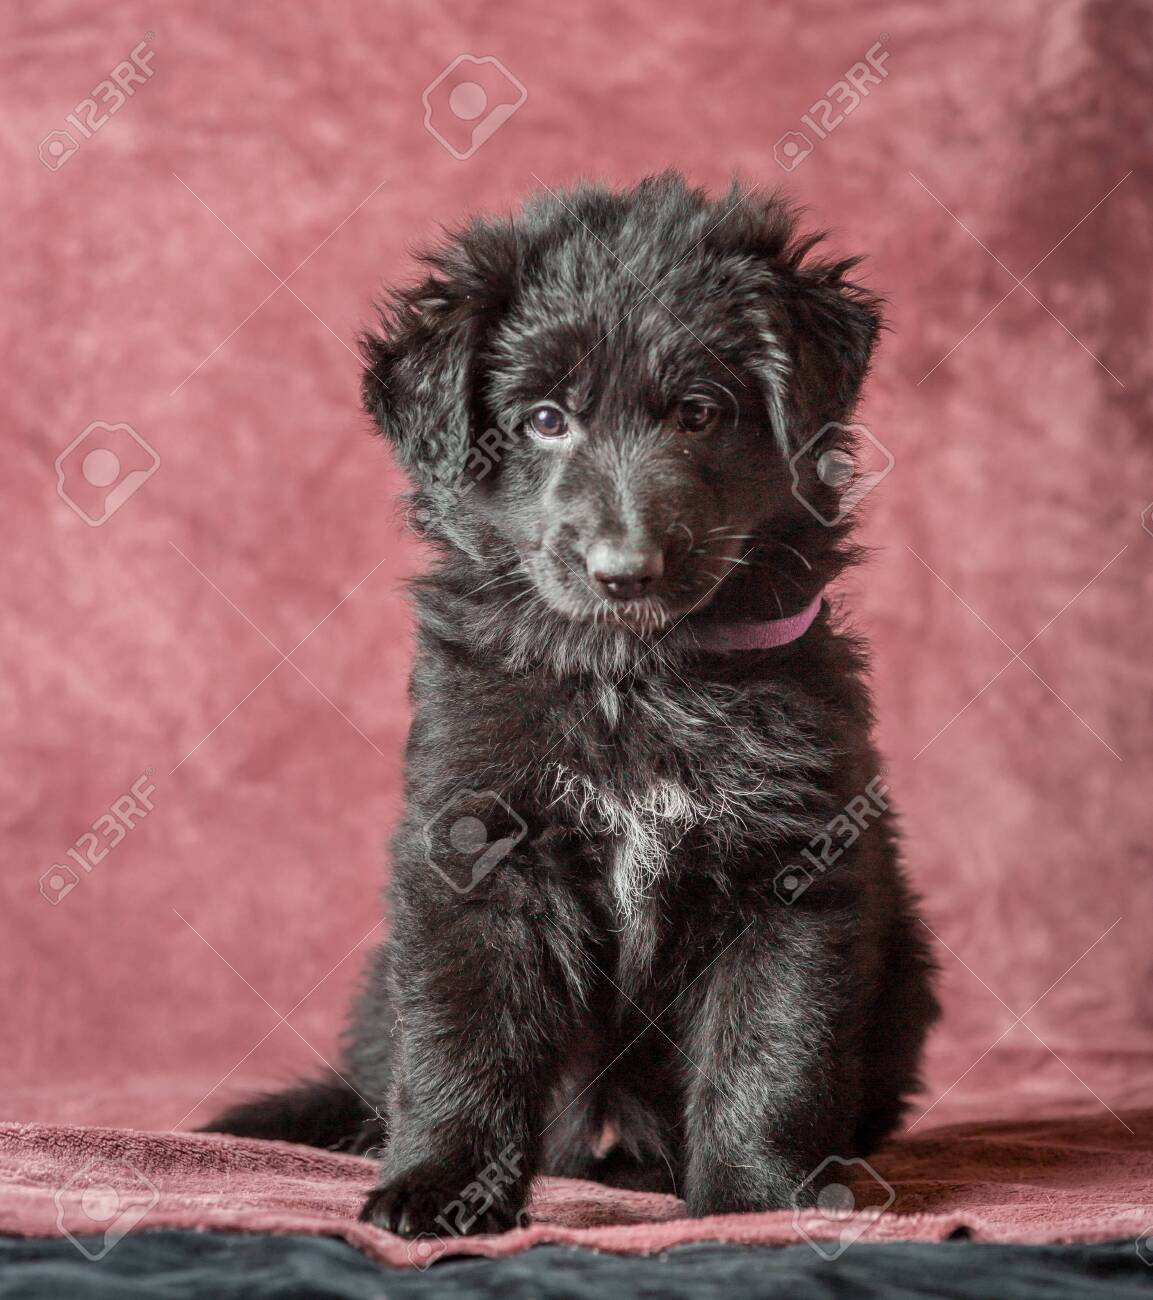 6 Weeks Old Long Haired Black German Shepherd Puppies Studio Stock Photo Picture And Royalty Free Image Image 113539423